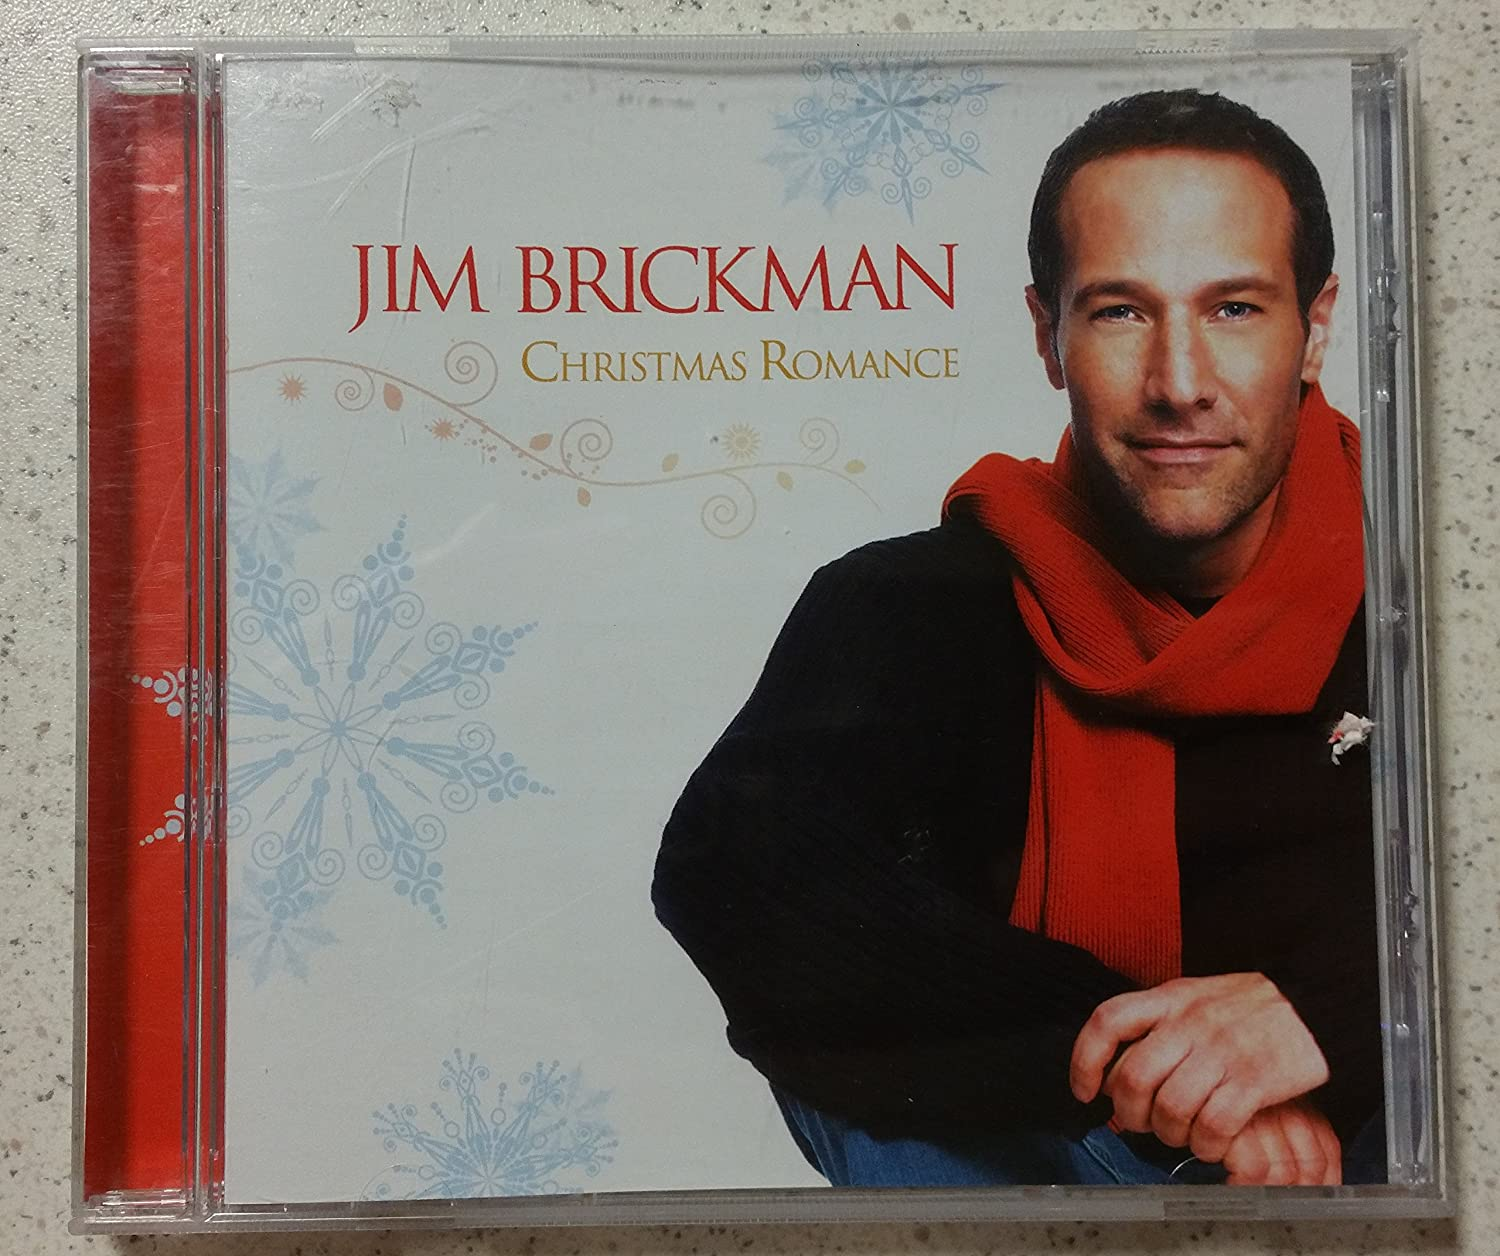 JIM BRICKMAN - CHRISTMAS ROMANCE - Amazon.com Music